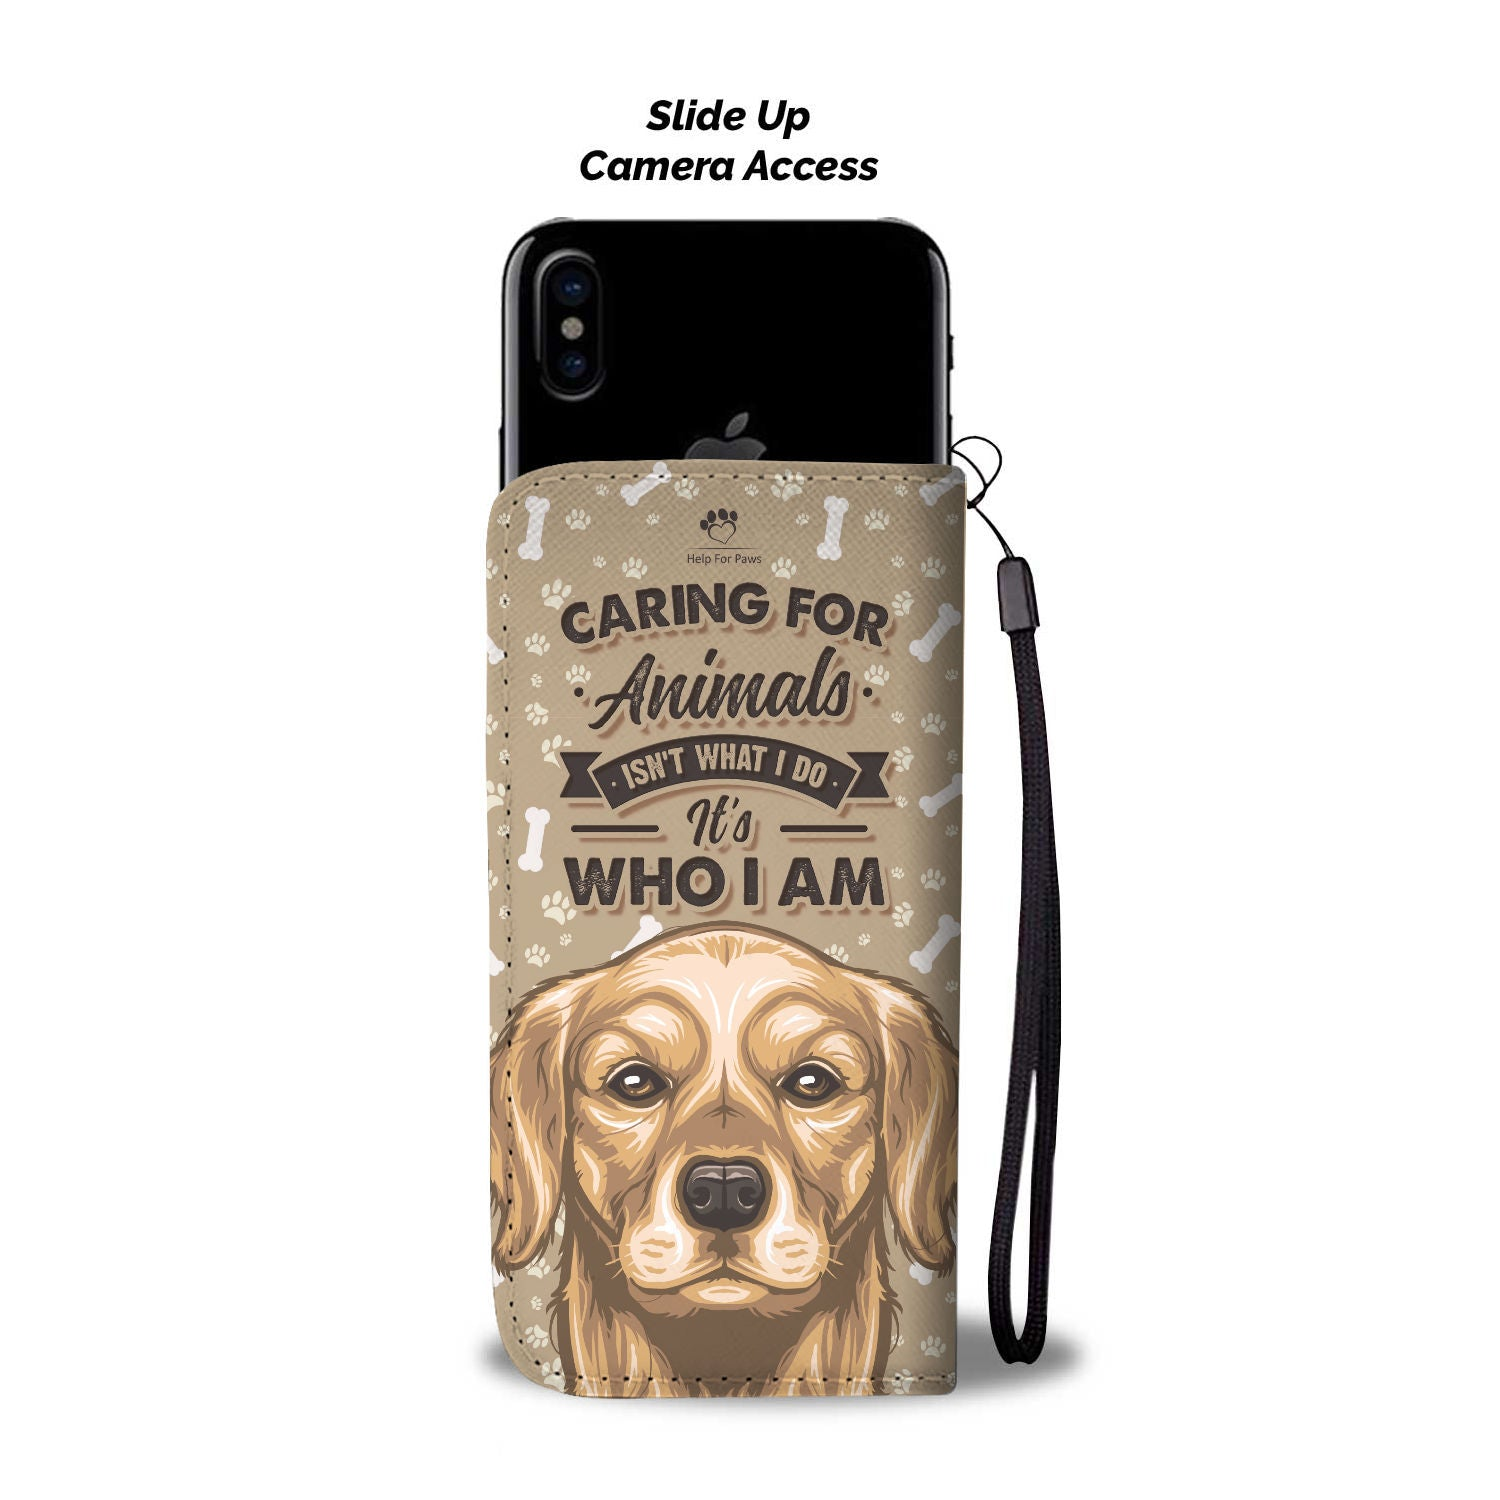 Caring For Animals Phone Case - Google